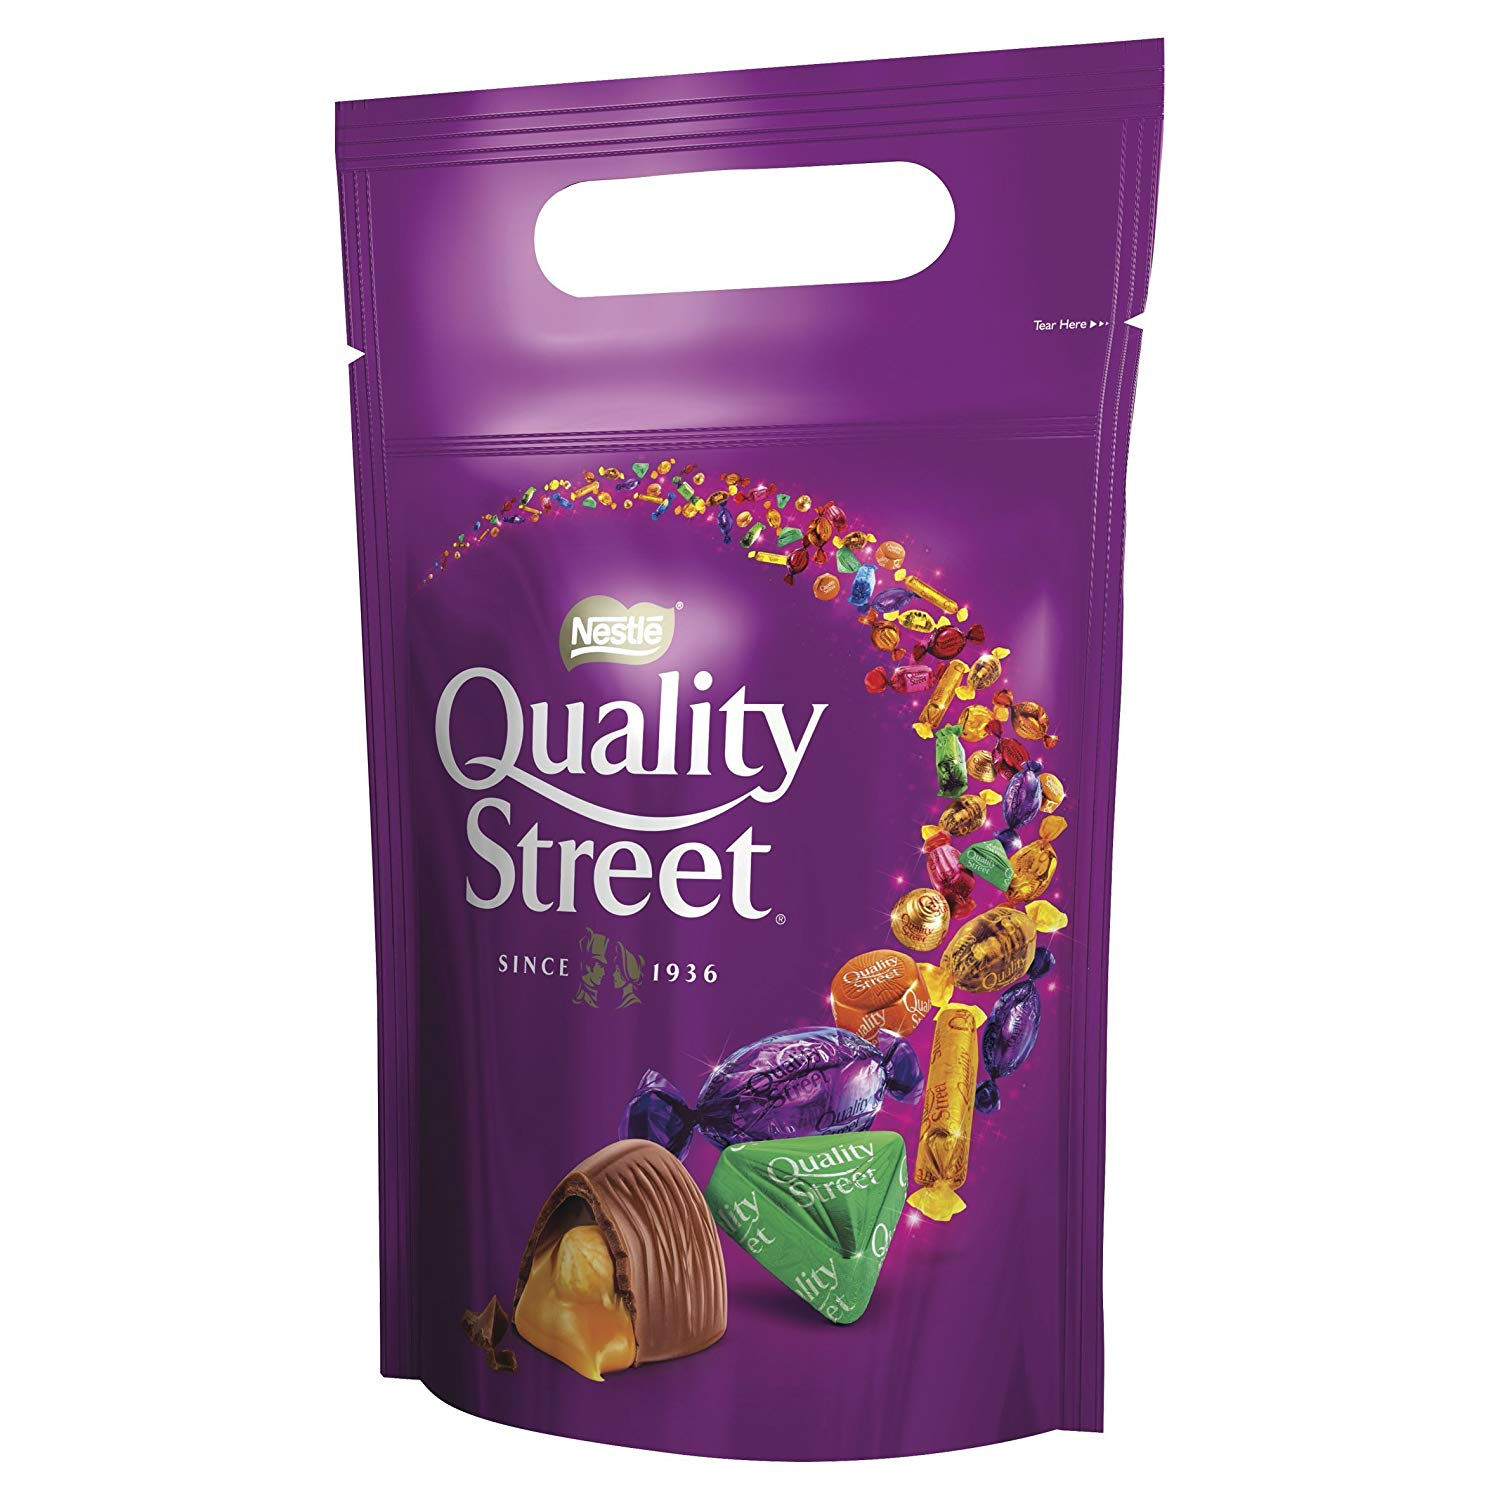 Nestle Quality Street (450g) Pouch of Chocolates